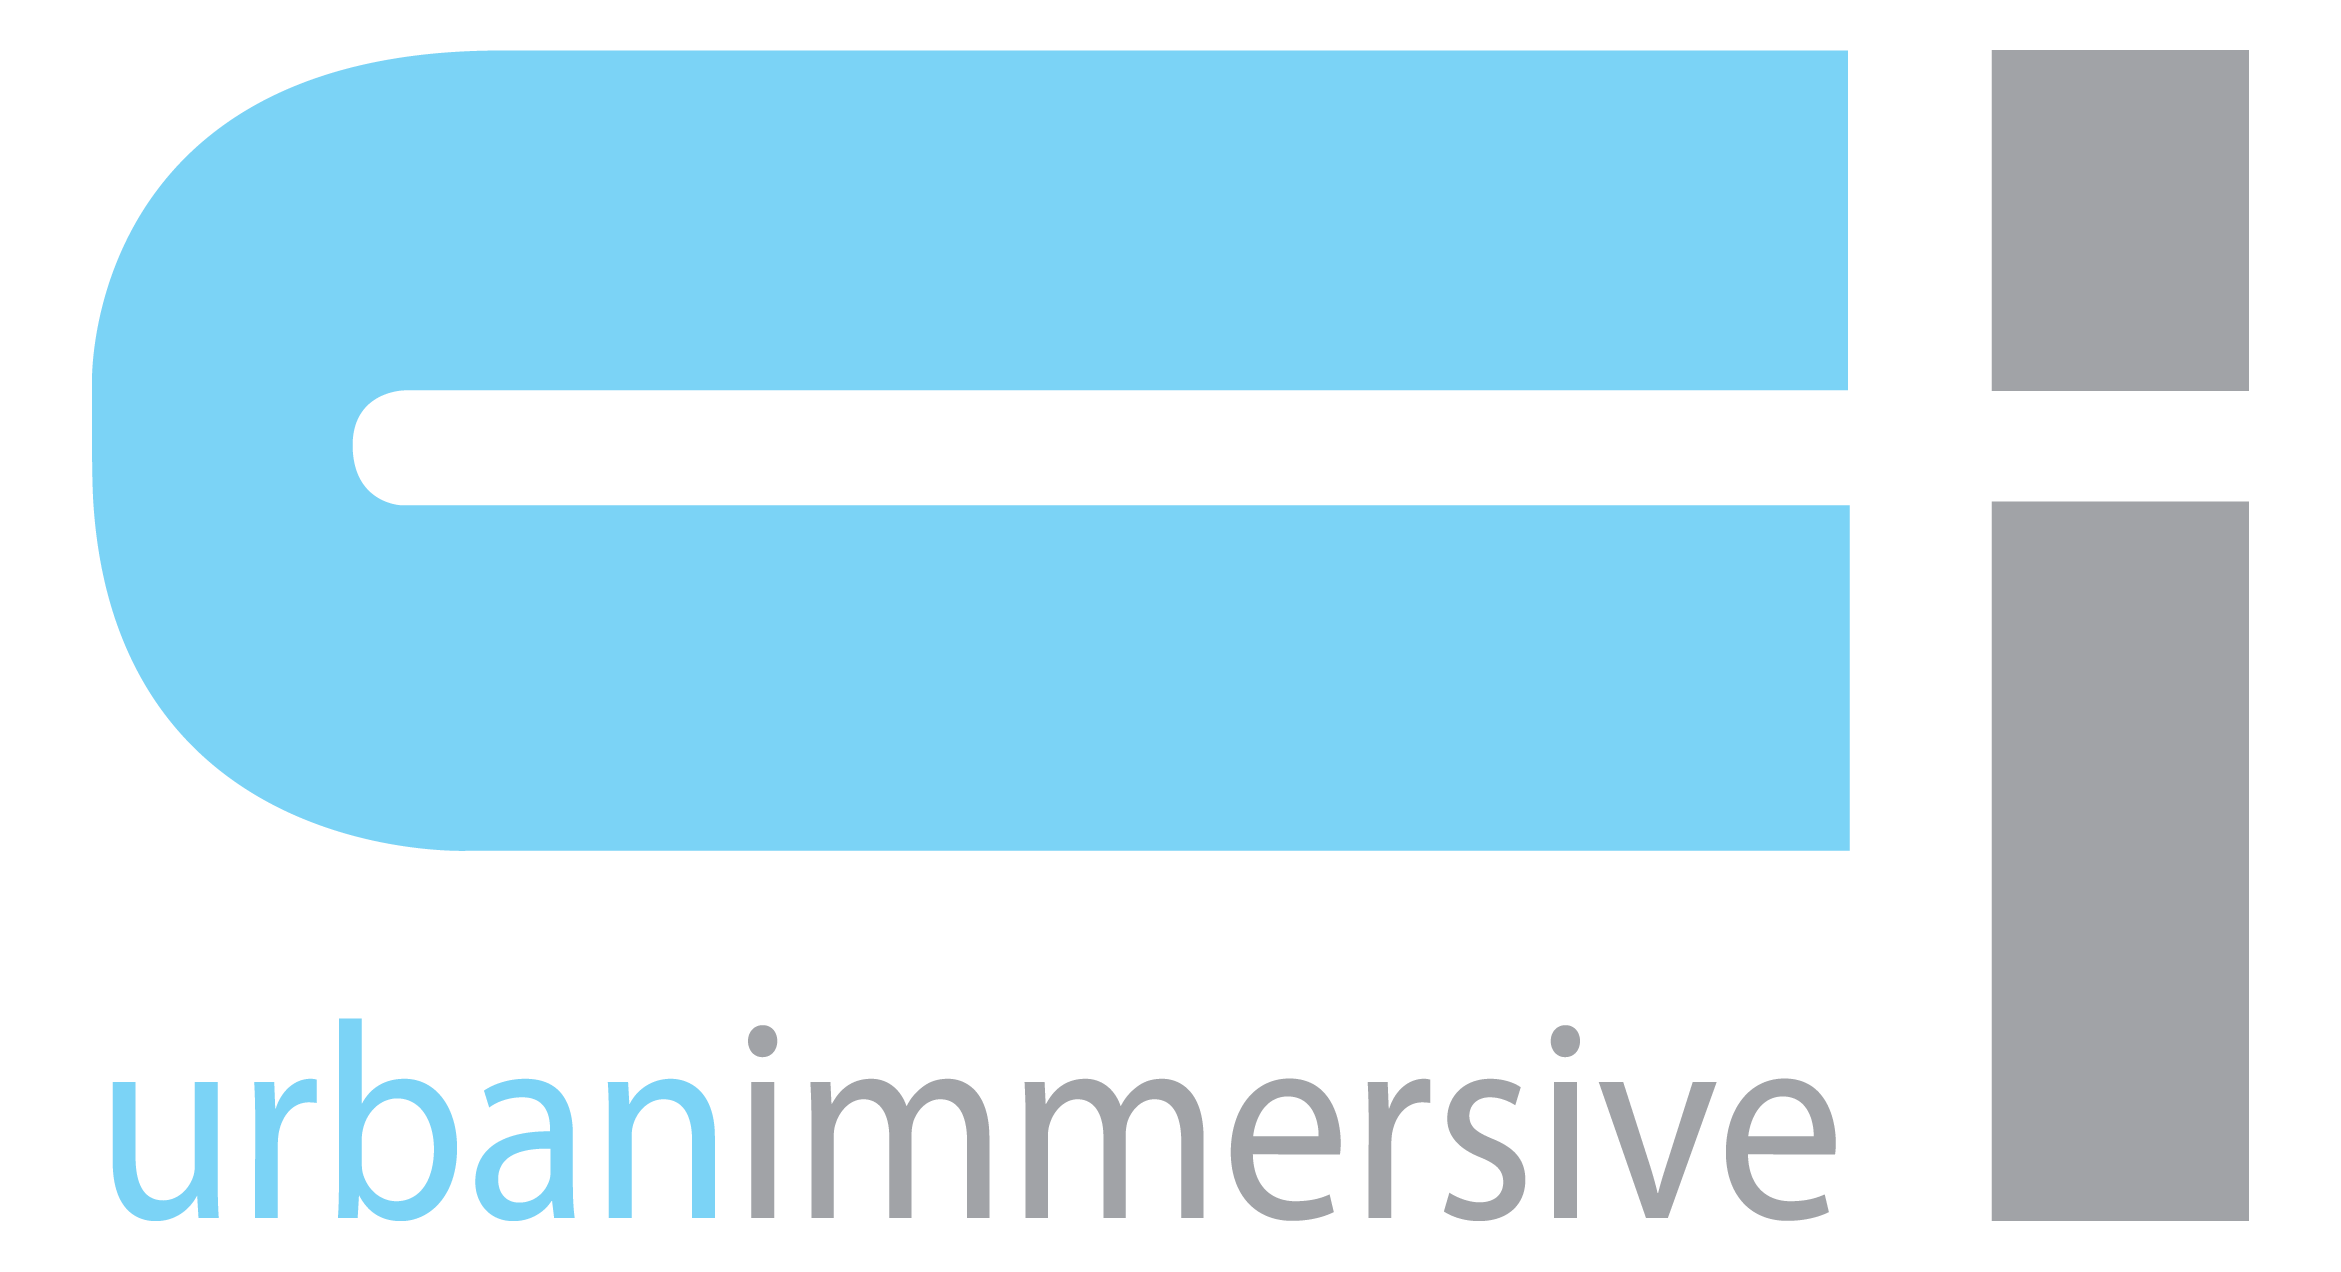 Urbanimmersive Launches 3D Pocket Websites™, a New Generation of Websites Powered by Its Propriety 3D Immersive Technology